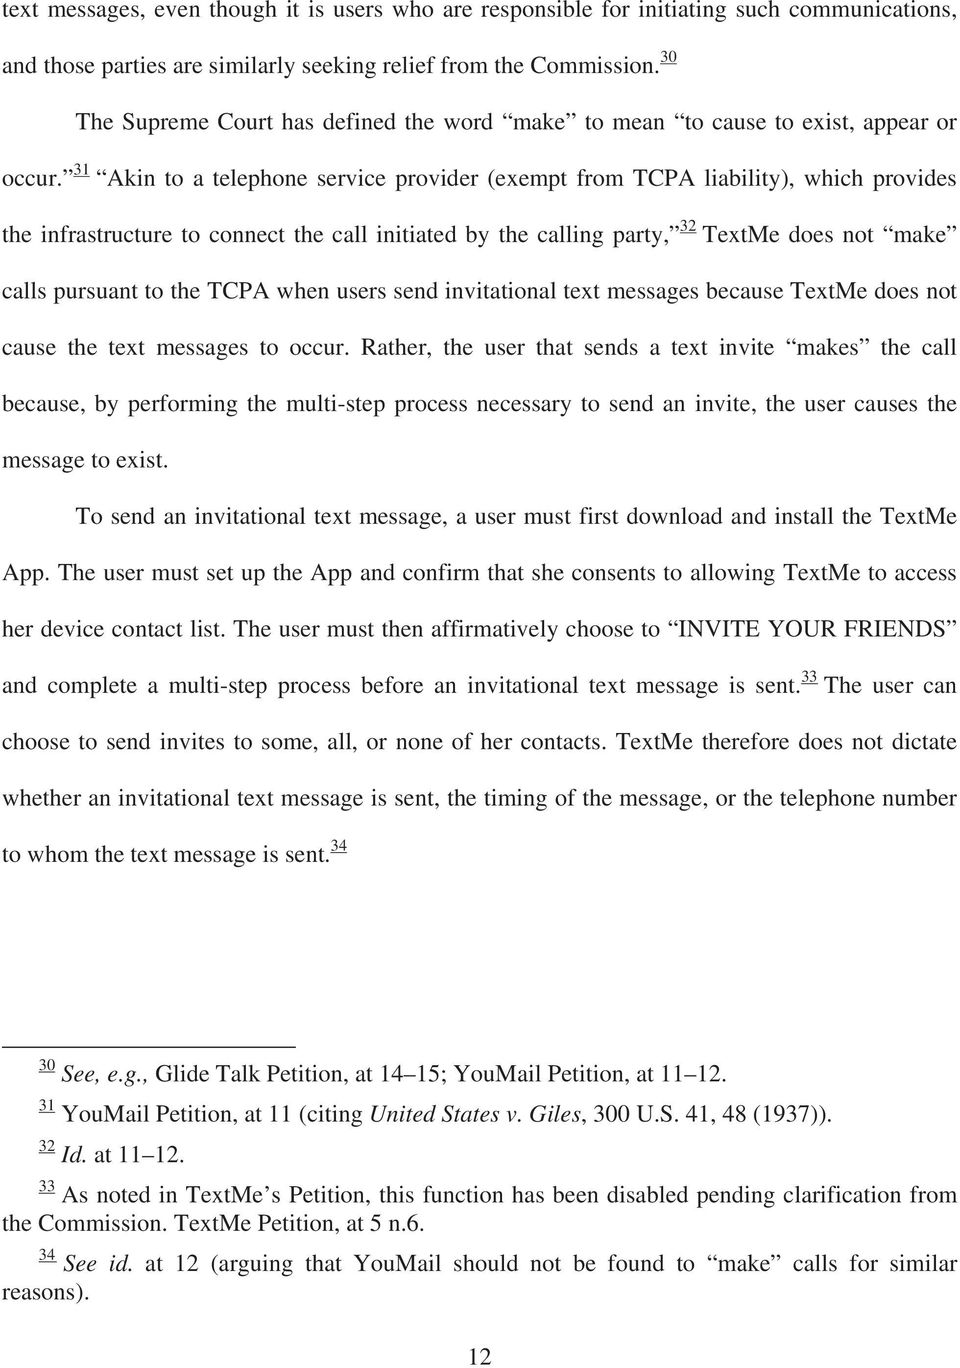 31 Akin to a telephone service provider (exempt from TCPA liability), which provides the infrastructure to connect the call initiated by the calling party, 32 TextMe does not make calls pursuant to